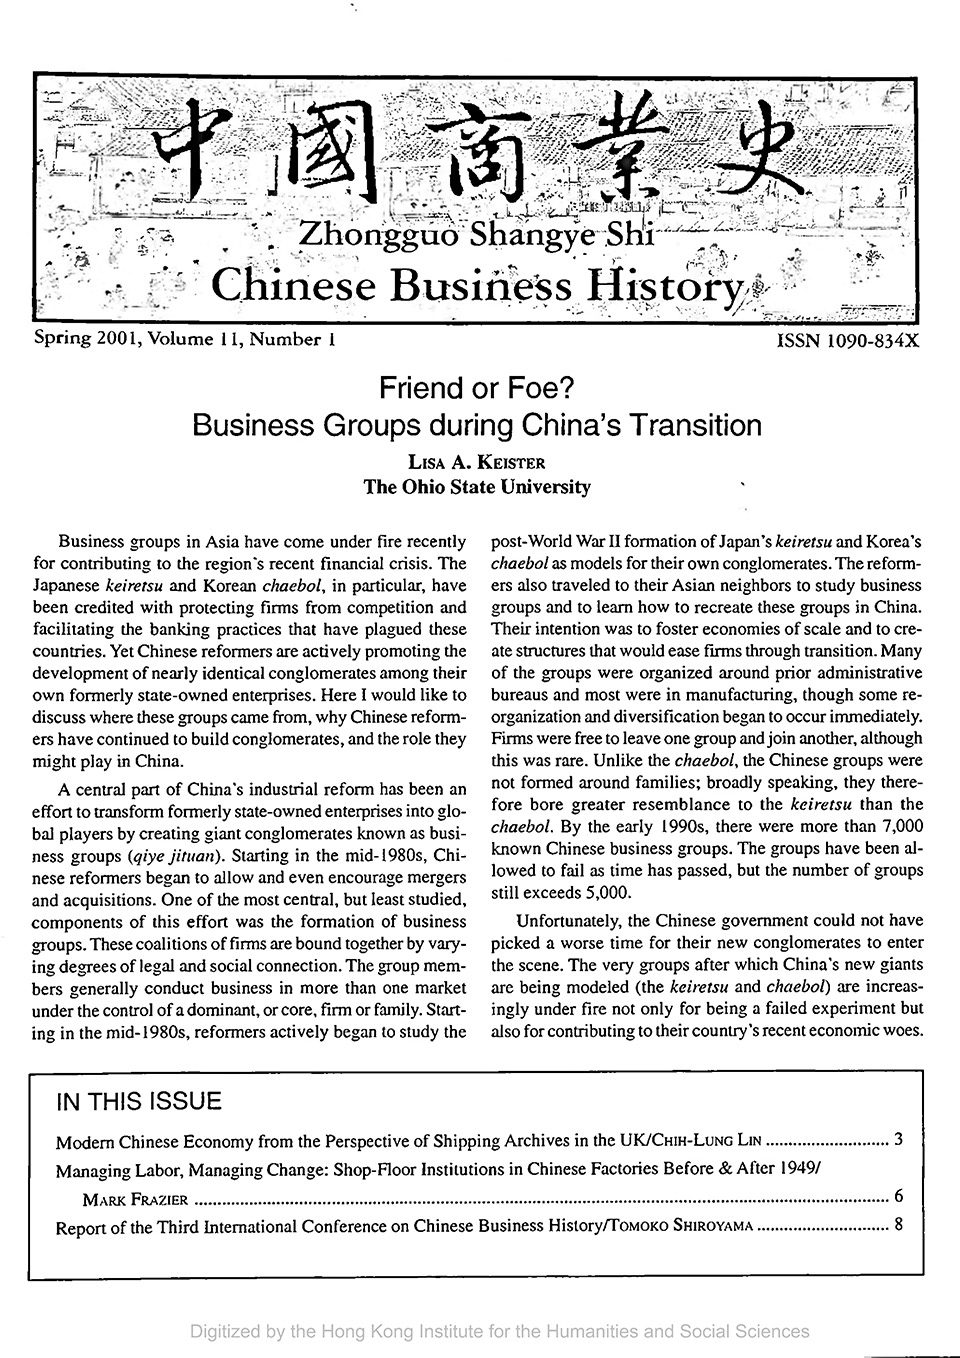 Cover of Chinese Business History Journal Volume 11, Number 1